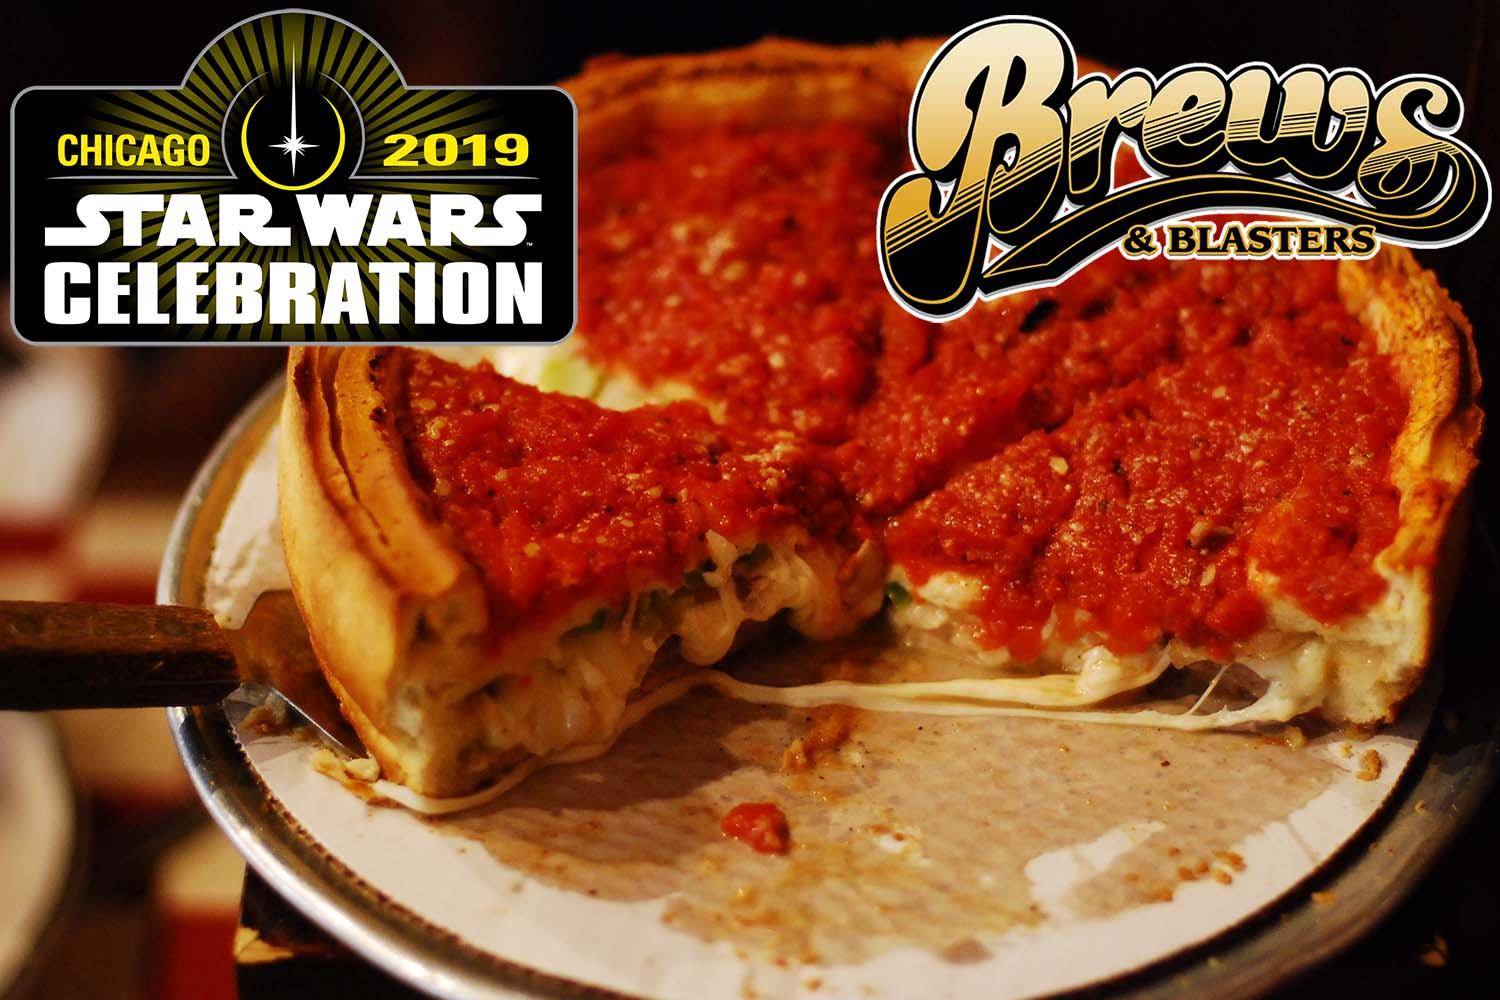 On the eve of Star Wars Celebration Chicago 2019, Chris and Joe are letting you in on all the tips, tricks and knowledge they've picked up over the years of attending Star Wars Celebrations—from how to find the best food, to the joys of a smaller panel, to the insanity that a simple pen brings to this episode, this is the podcast you need to need to hear this week if you're attending Celebration or hanging at home.